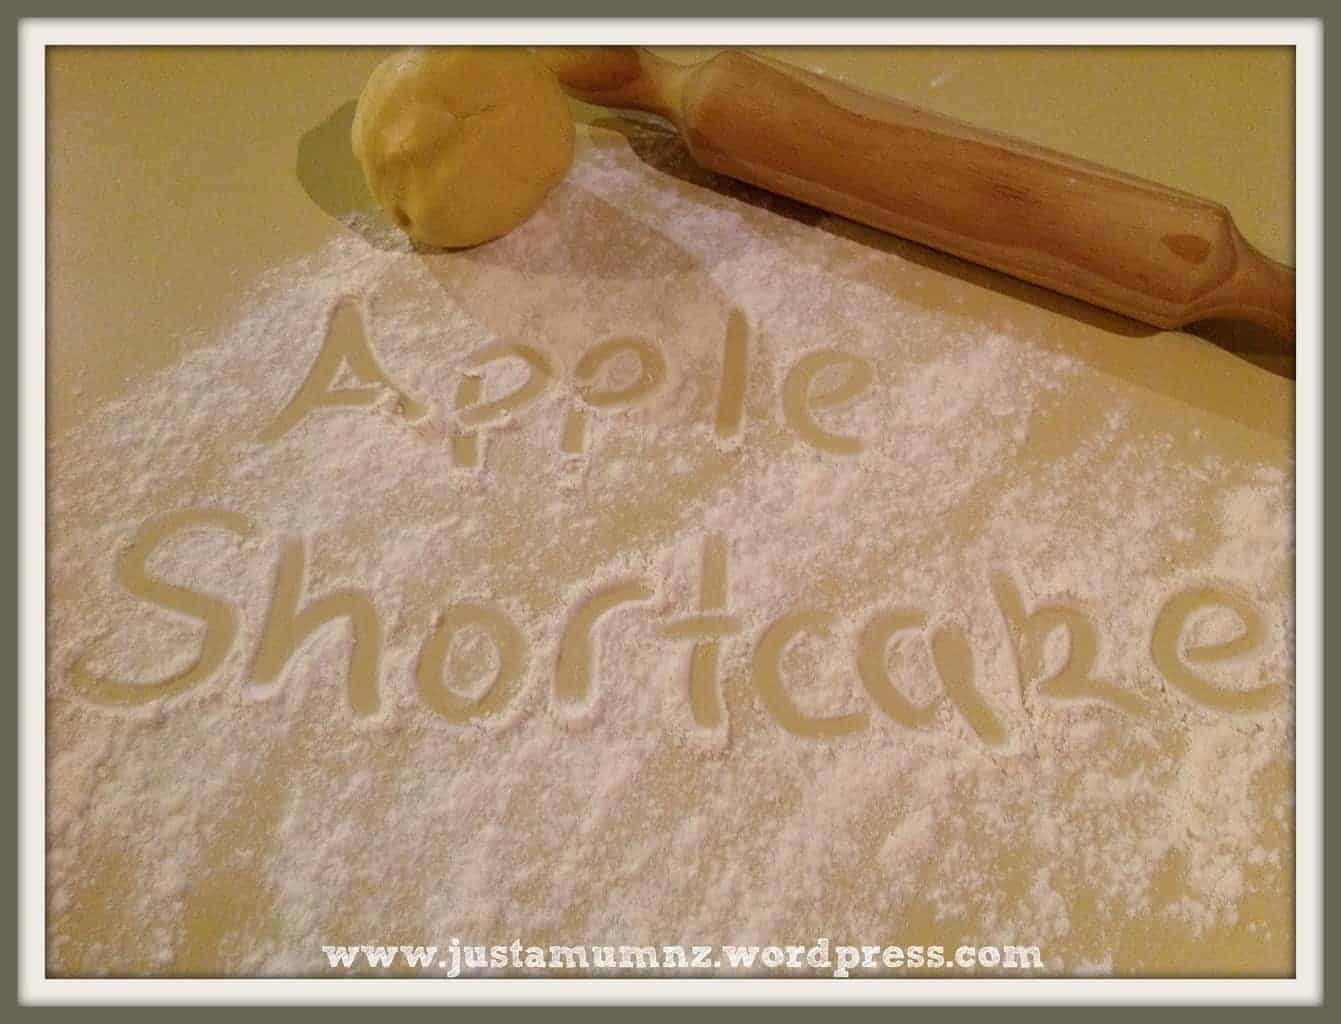 Words Apple Shortcake written in flour on the bench